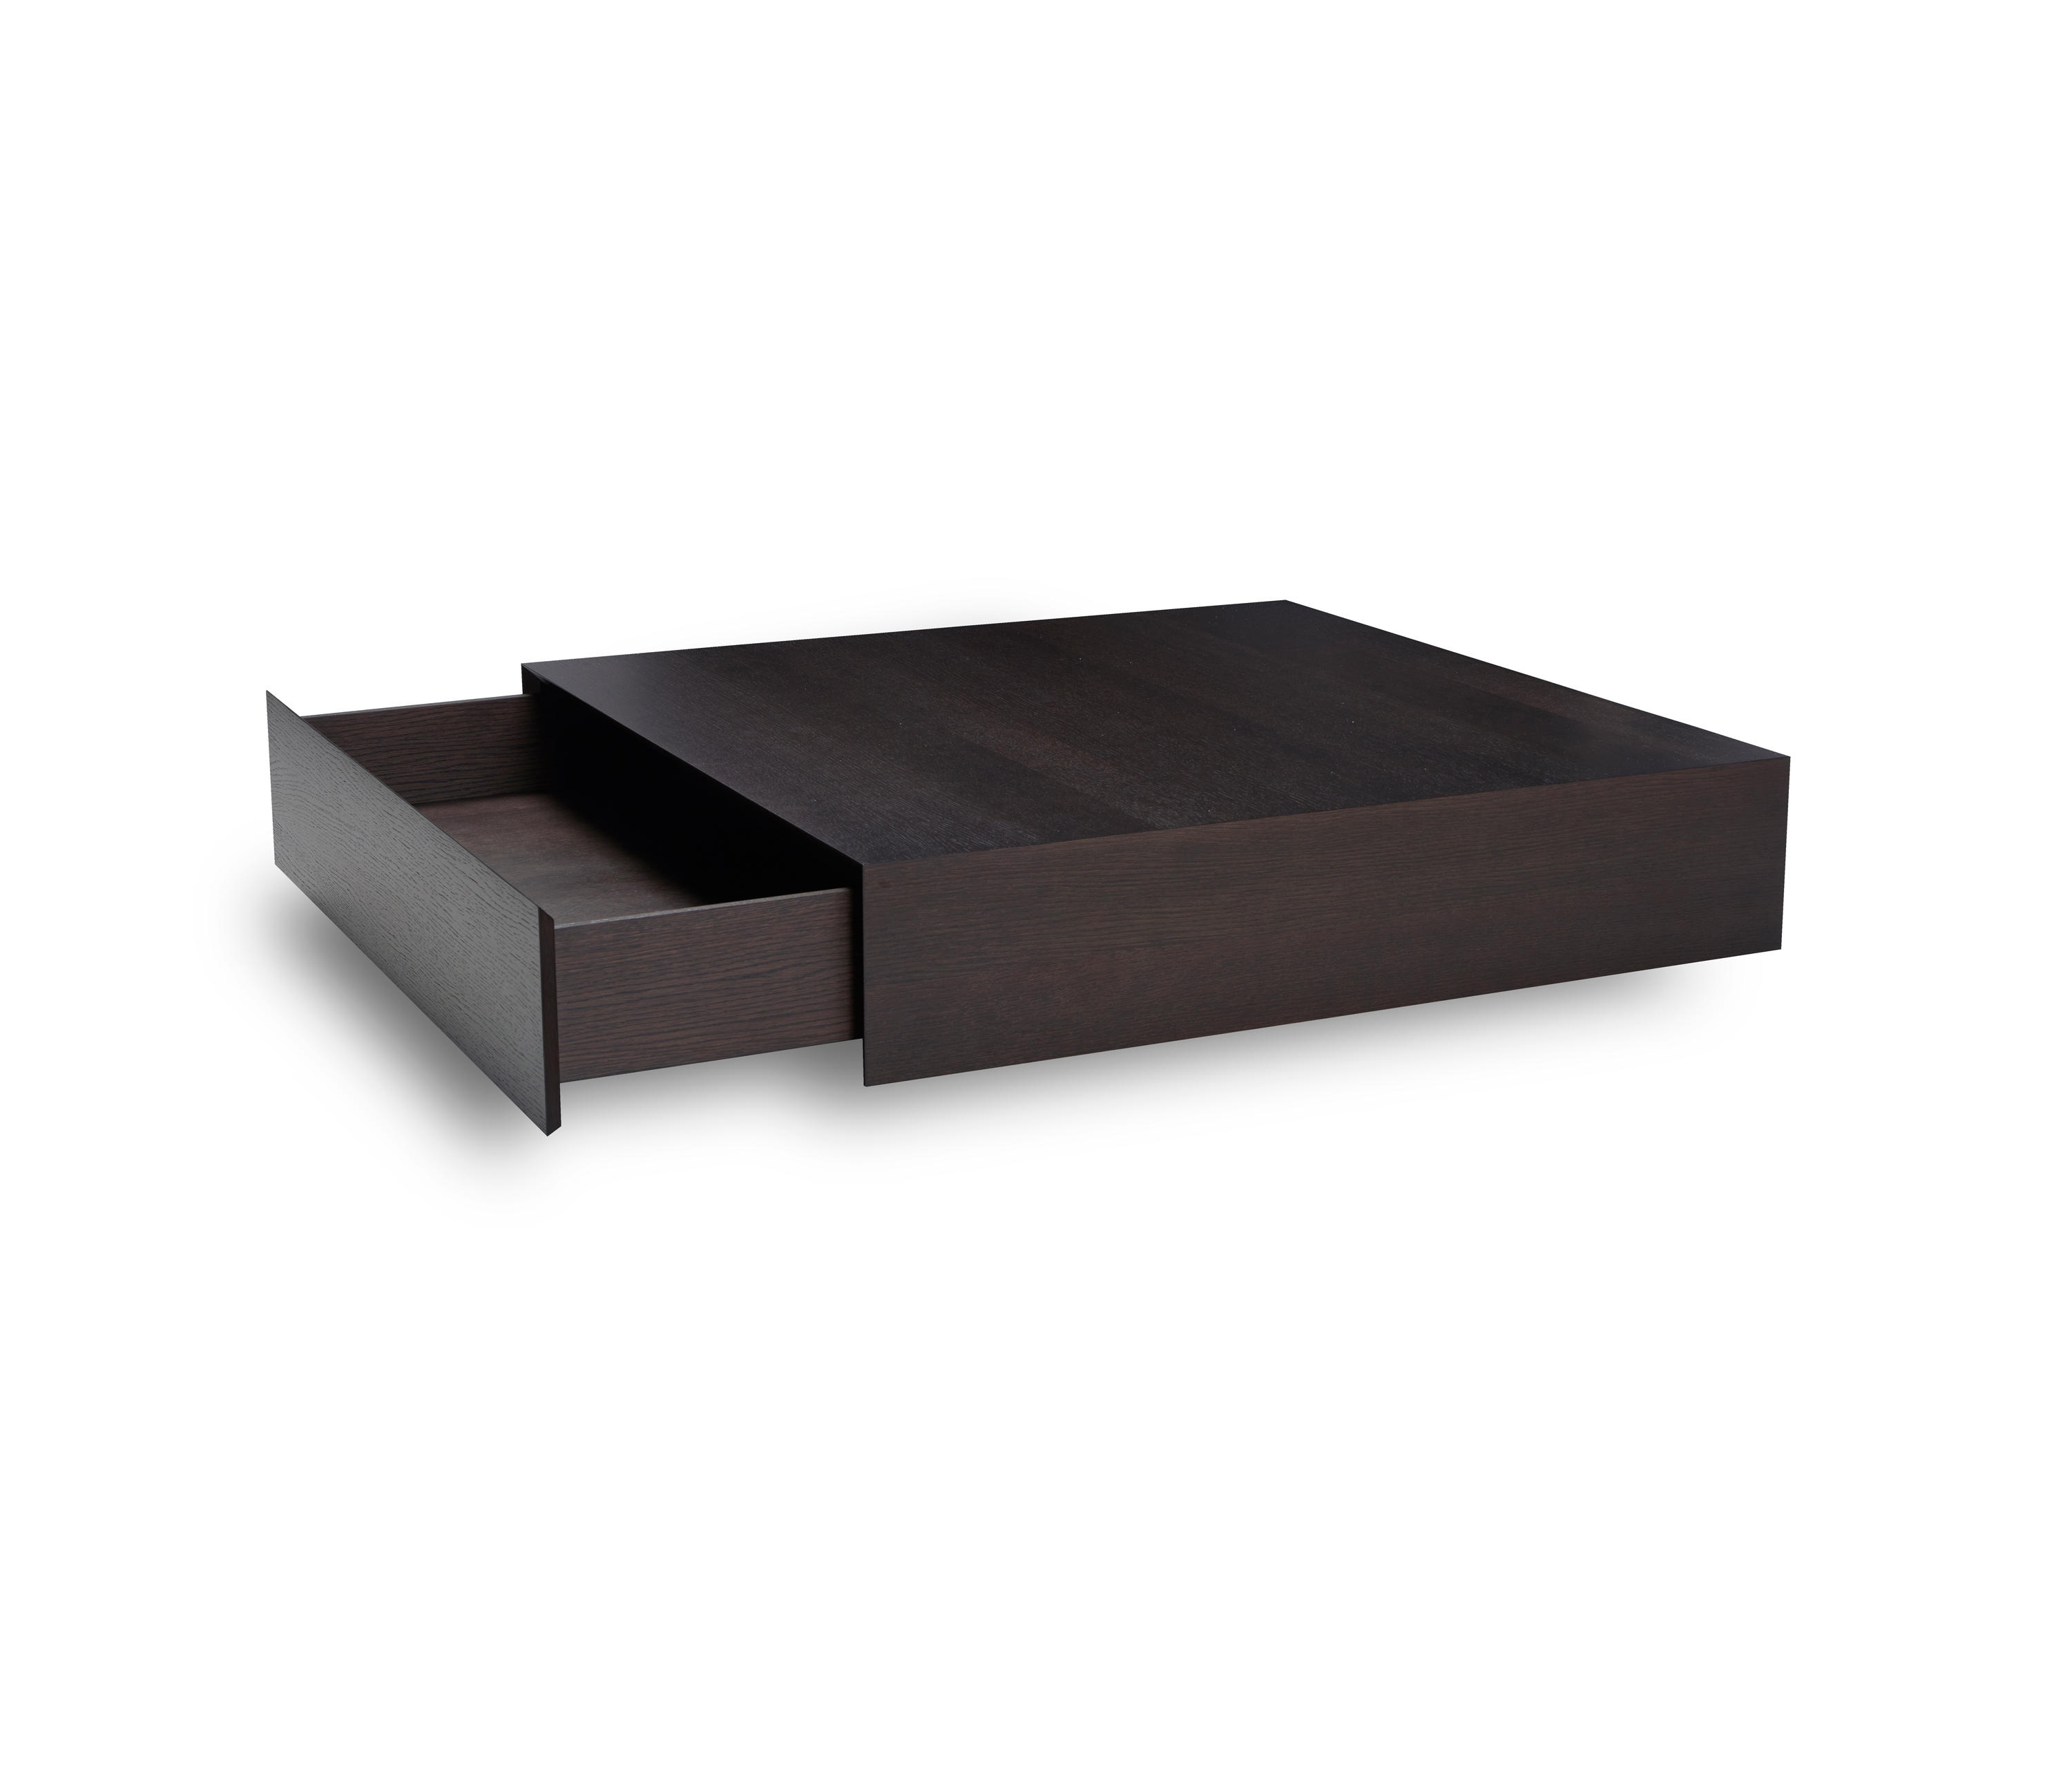 Silva JR T838 By Jori | Lounge Tables